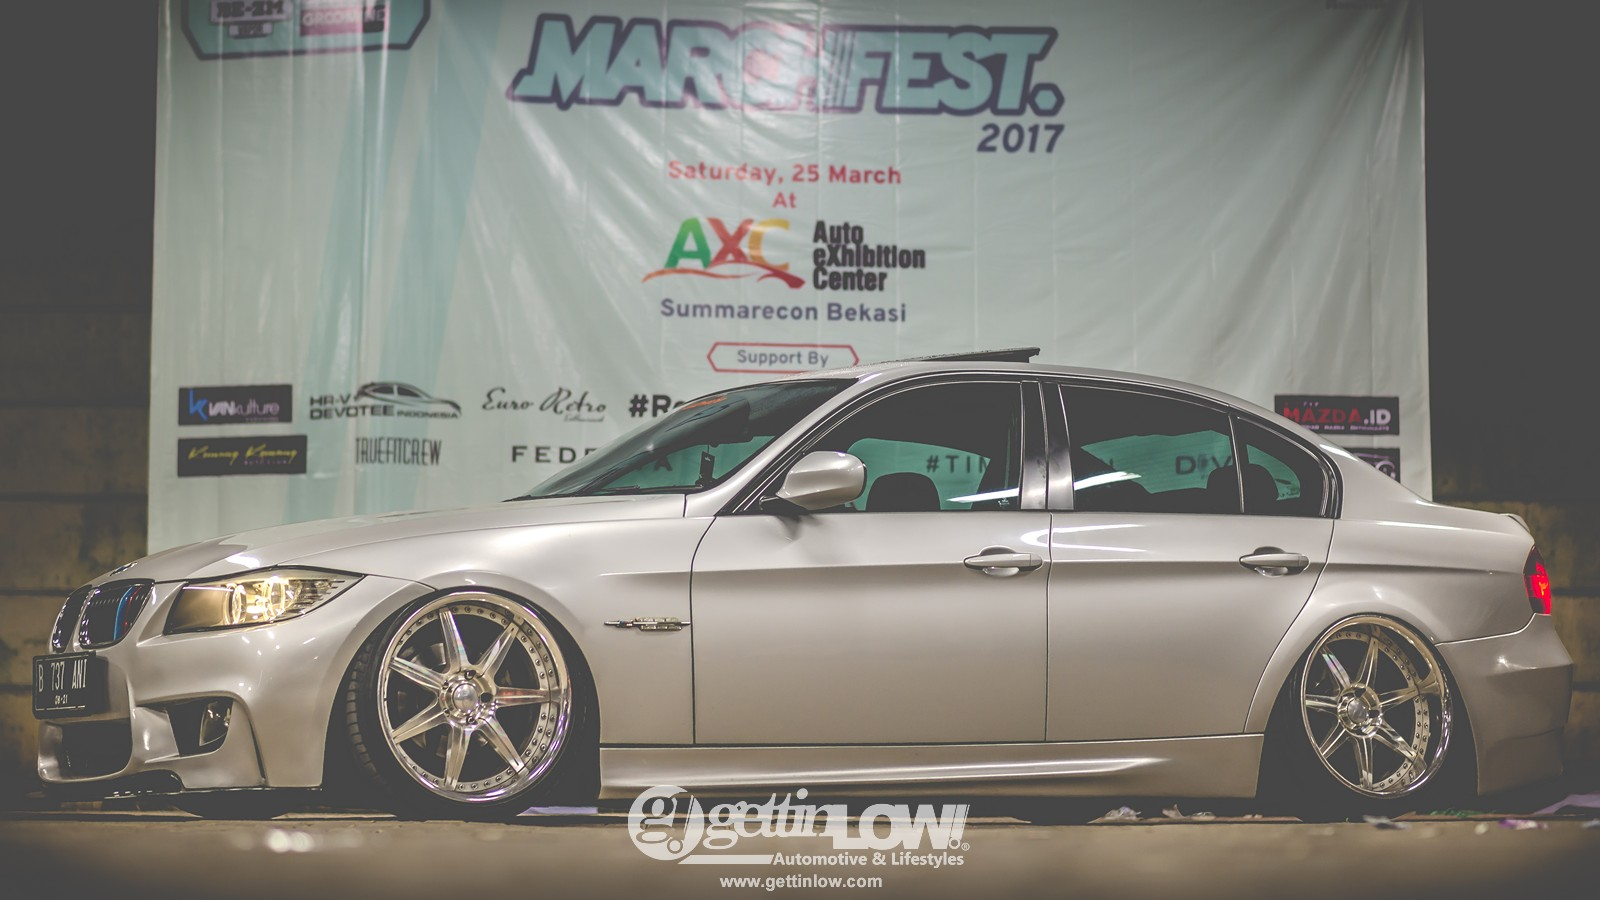 MARCHFEST 2017